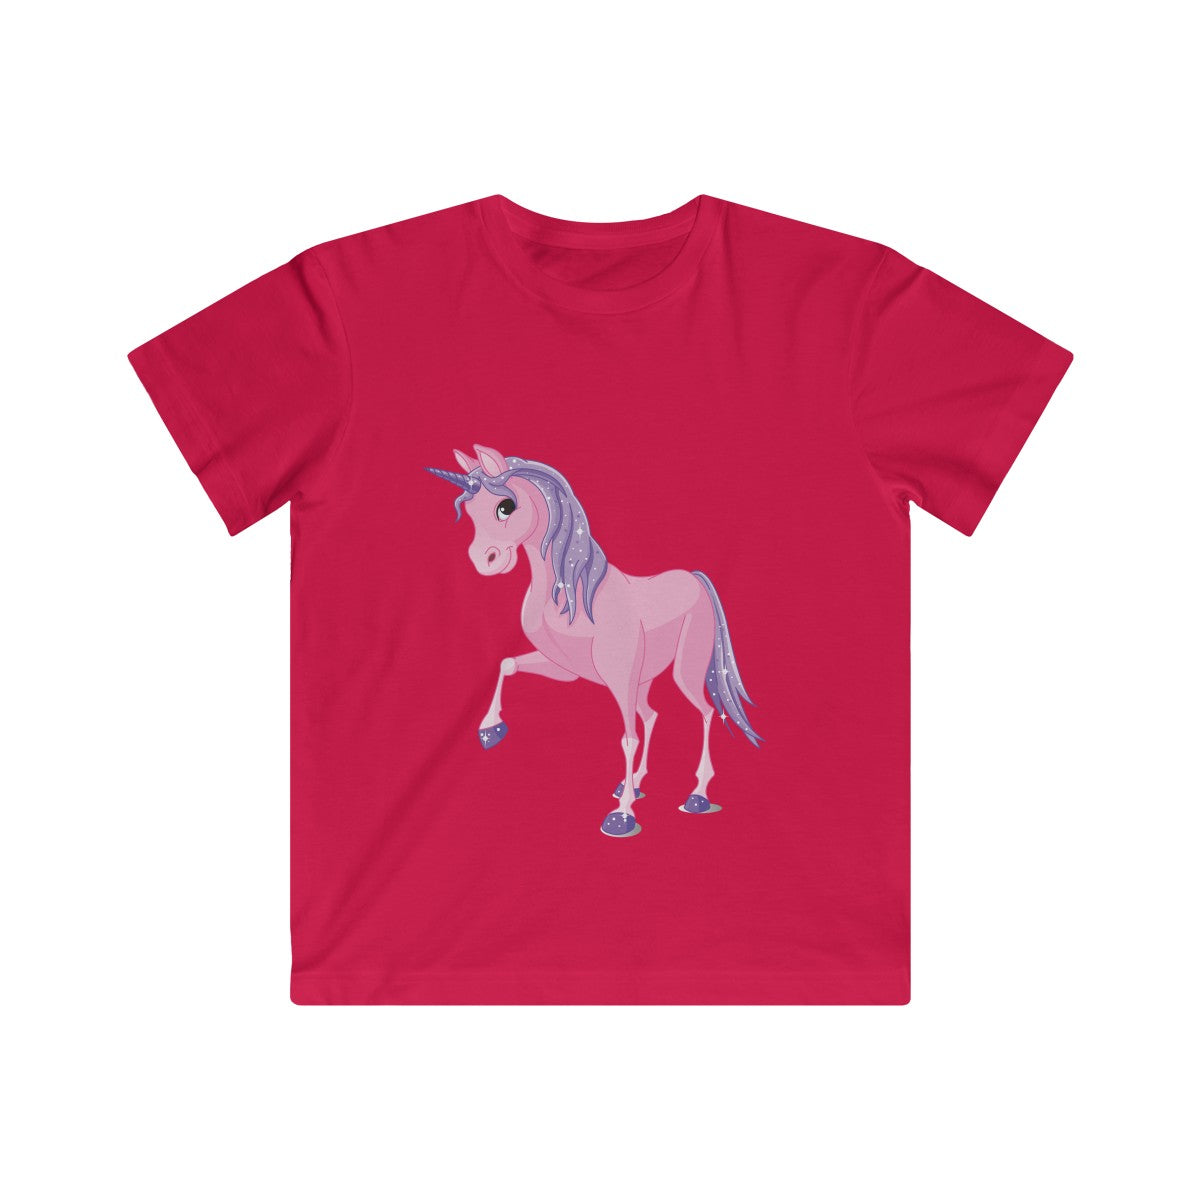 Unicorn - T-Shirt - My Vegan Menu